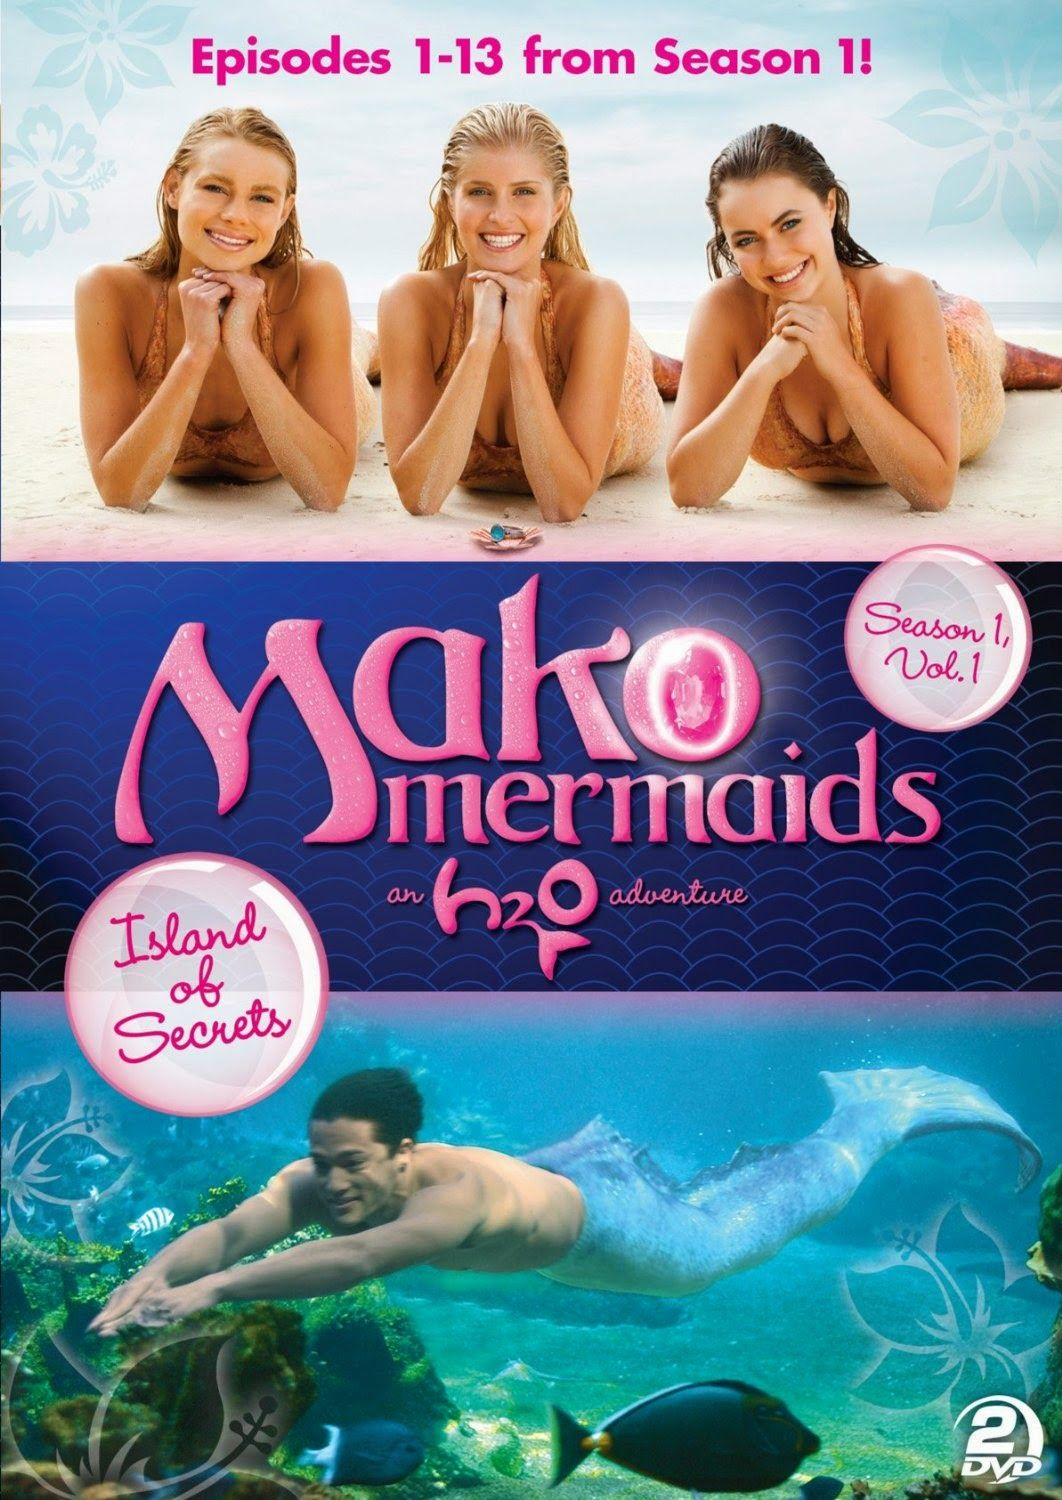 mako mermaids season 1 episode 1 full episode